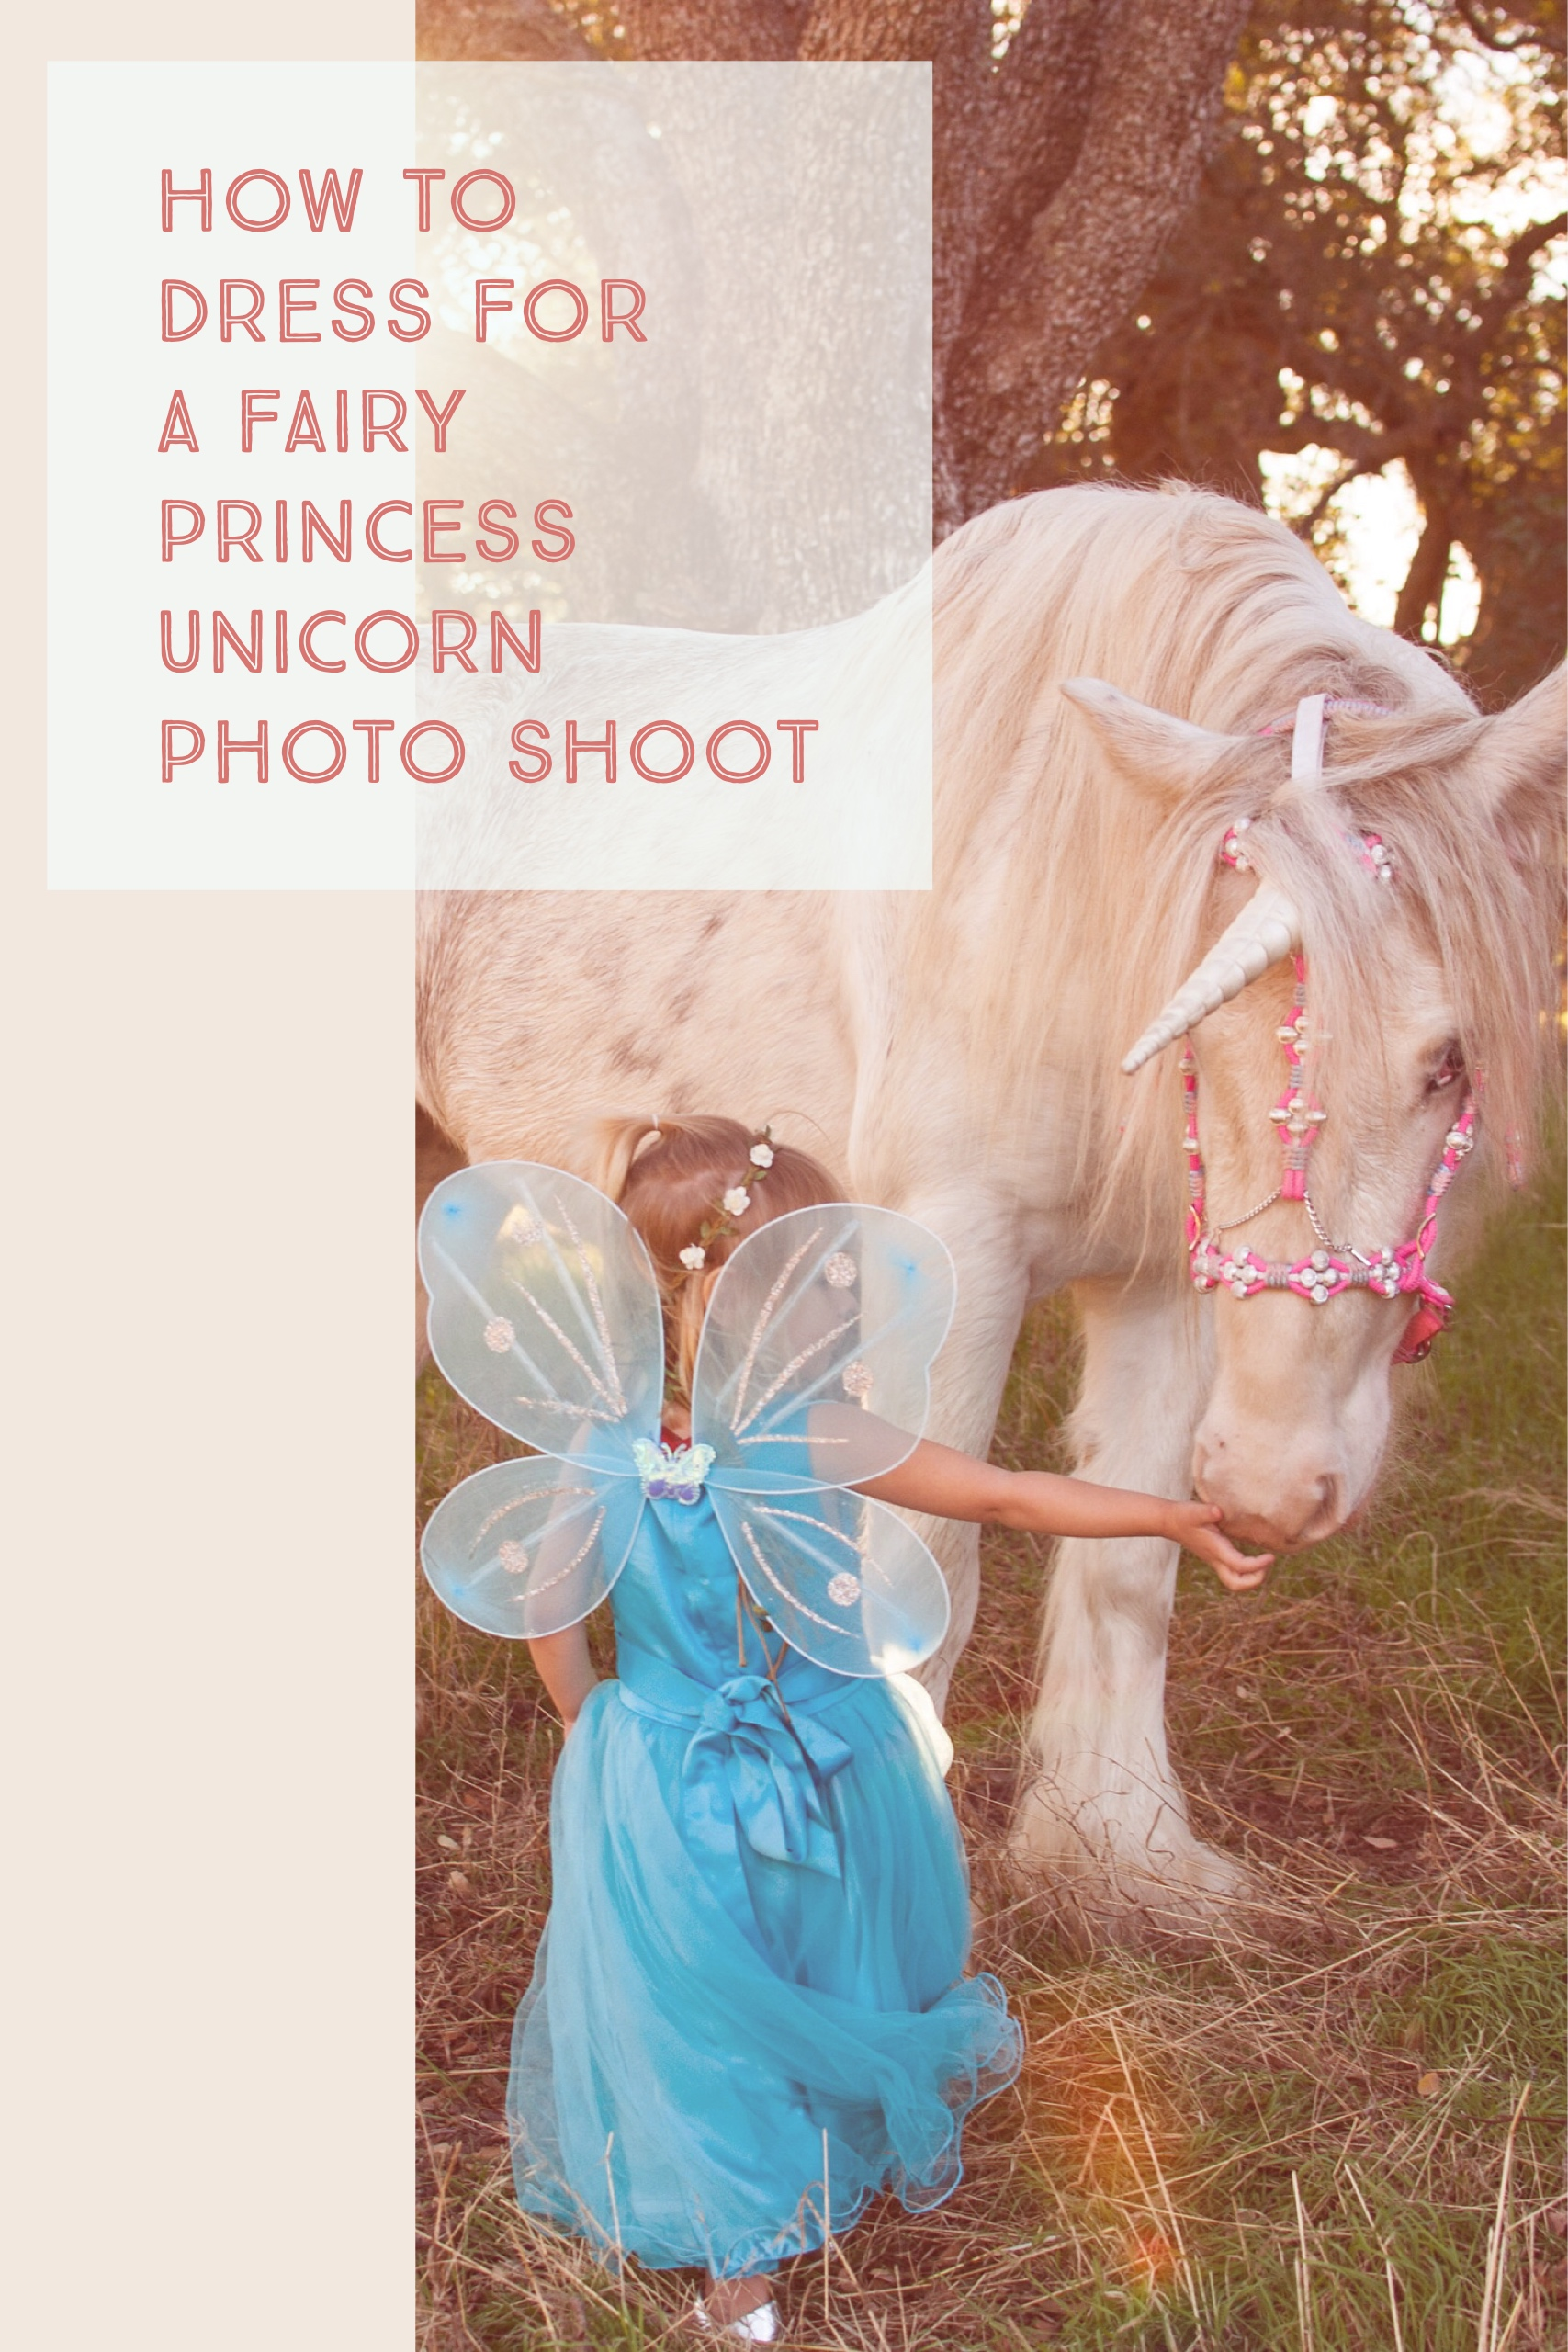 Everything you need to know to dress your daughter up like a fairy princess for a glitter-filled unicorn photo shoot.